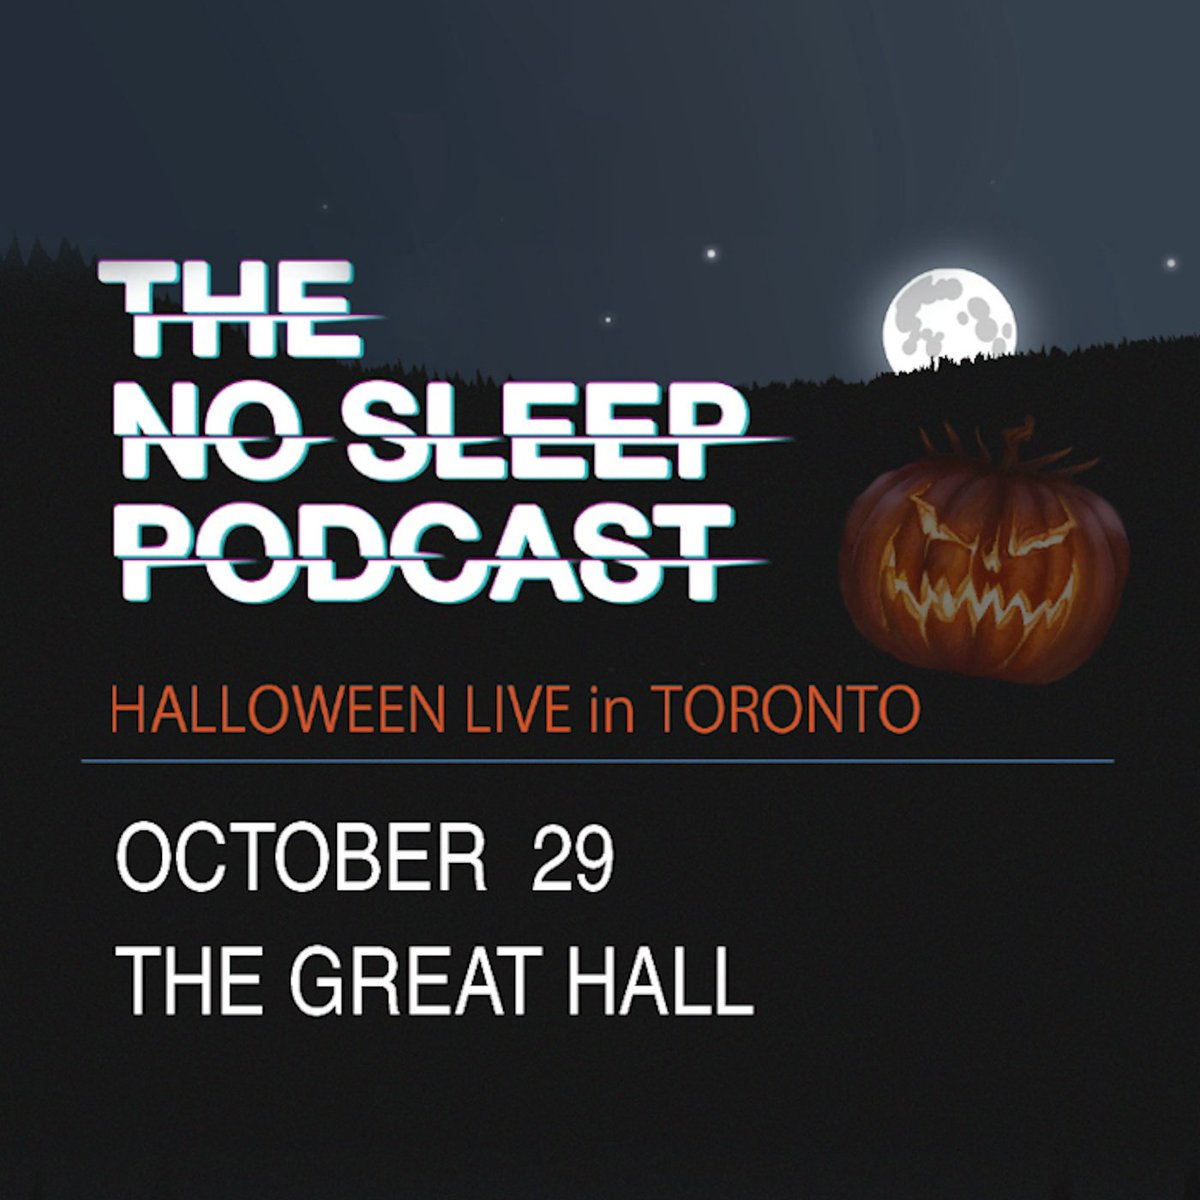 Halloween Live in Toronto tickets go on pre-sale today at 10a EDT. Use code: NoSleep for pumpkin-spiced tickets. https://t.co/VnVULNPcEE